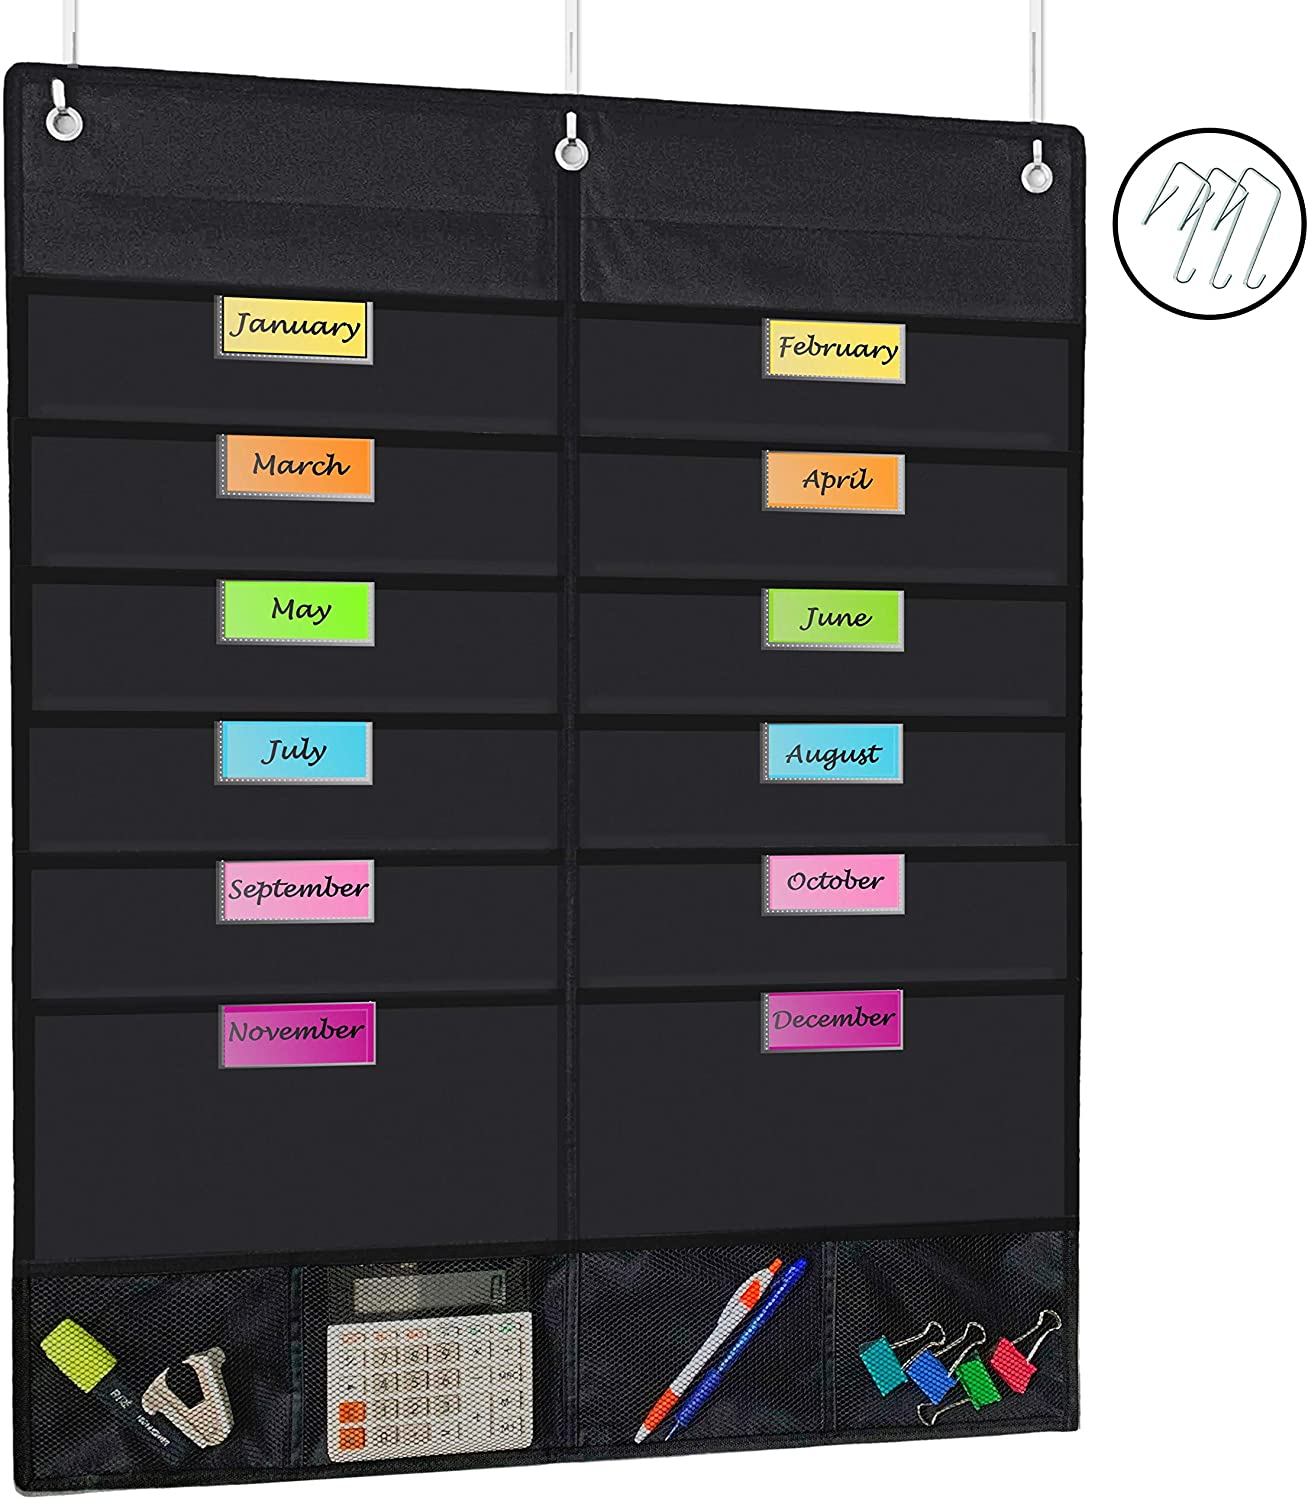 APLOMB! - 2020 Monthly Hanging Bill Organizer, Chart Pockets with Name Tags - Wall Hanging or Over The Door Storage - Home Office, School, Dorm, Scrapbook, Cubicle - Black